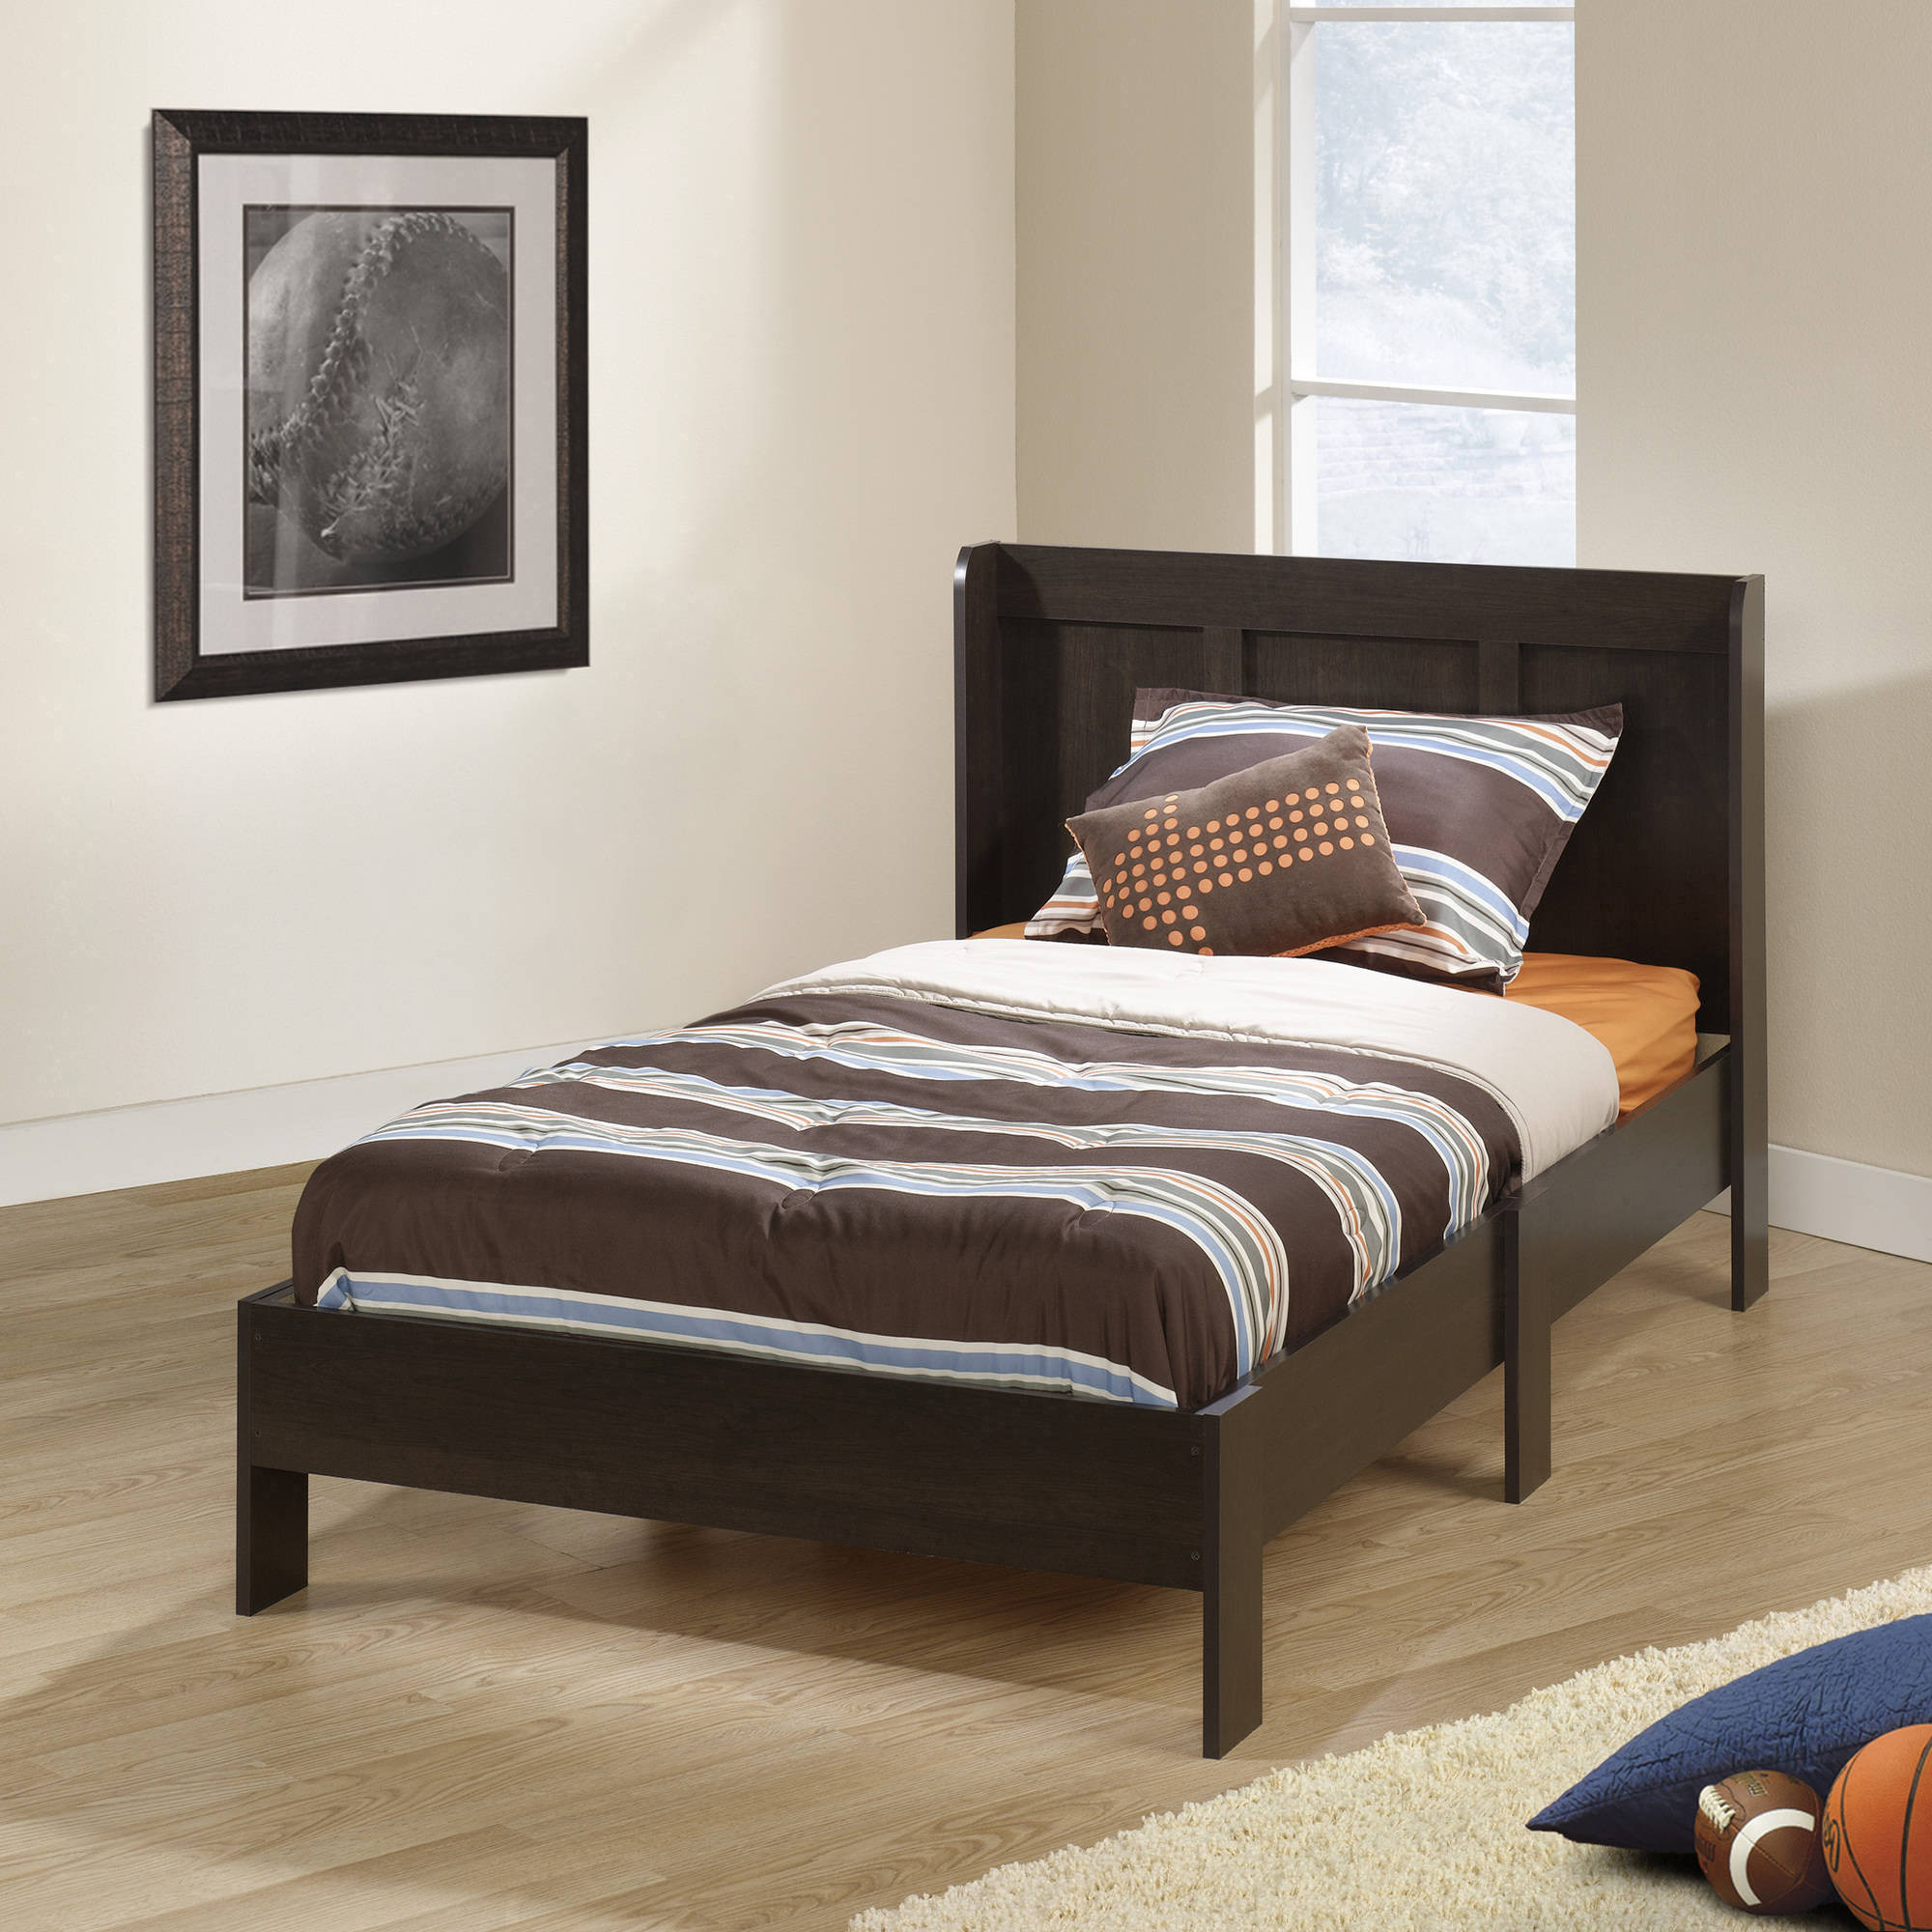 Best ideas about Walmart Bedroom Sets . Save or Pin Twin Bedroom Furniture Sets Walmart Now.